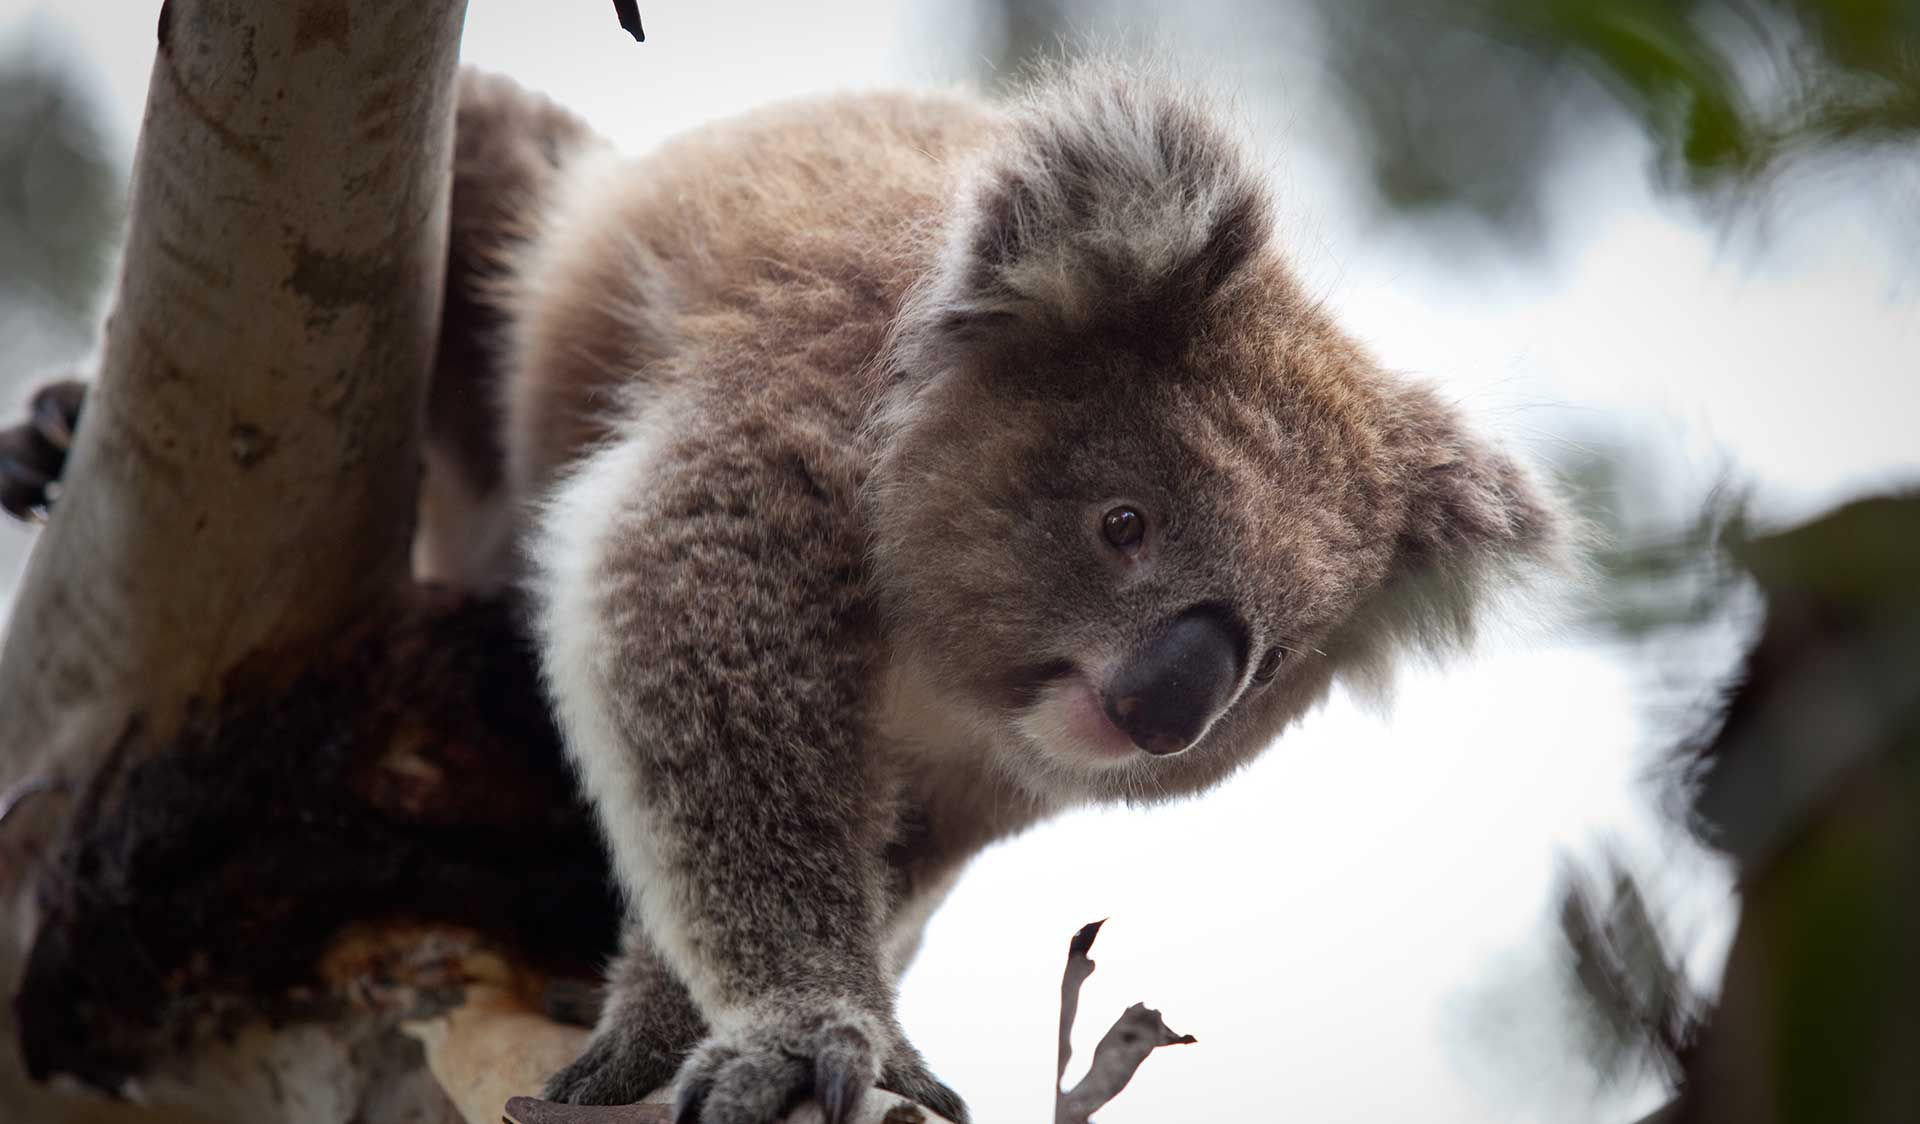 A koala in a tree in the Brisbane Ranges National Park.